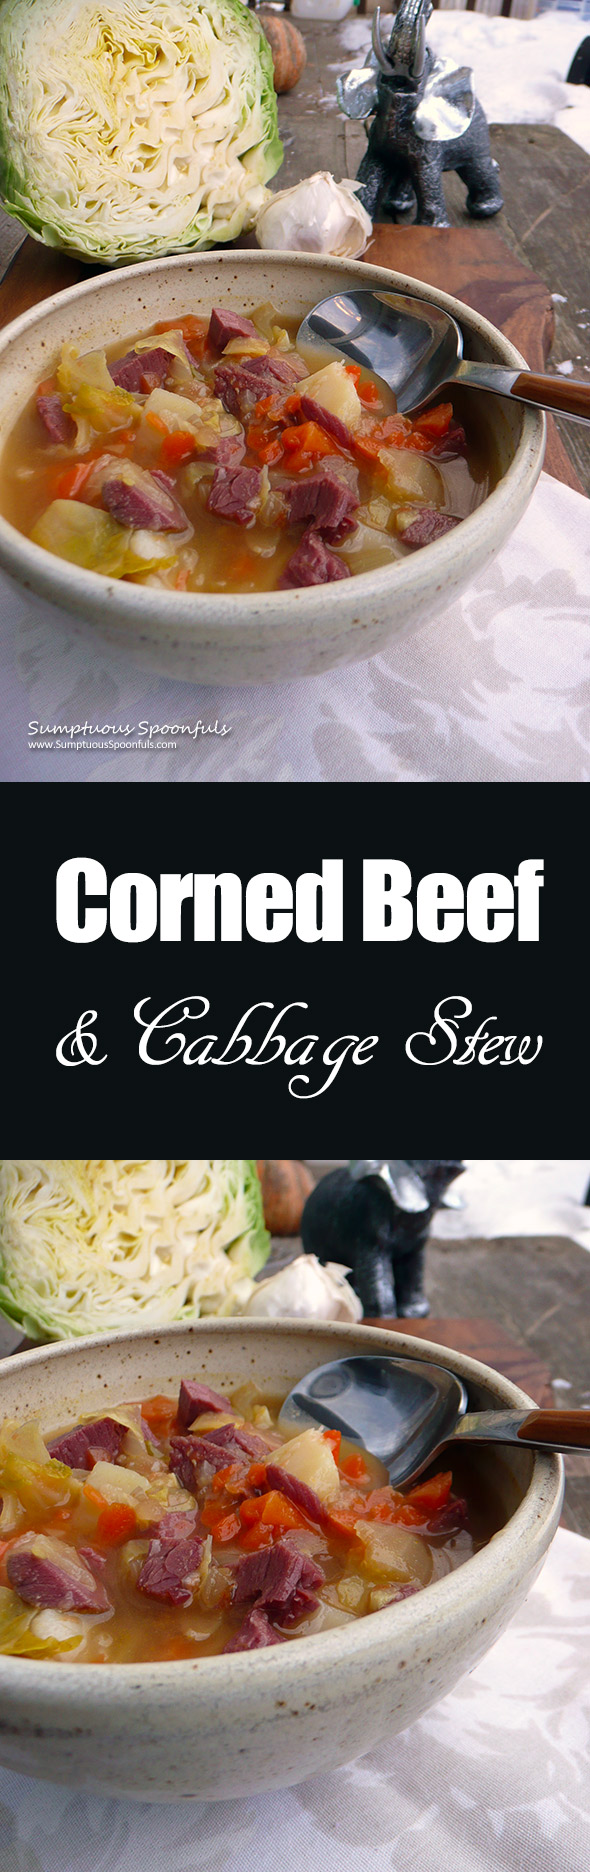 Corned Beef & Cabbage Stew ~ Sumptuous Spoonfuls #cornedbeef #cabbage #potato #stew #recipe